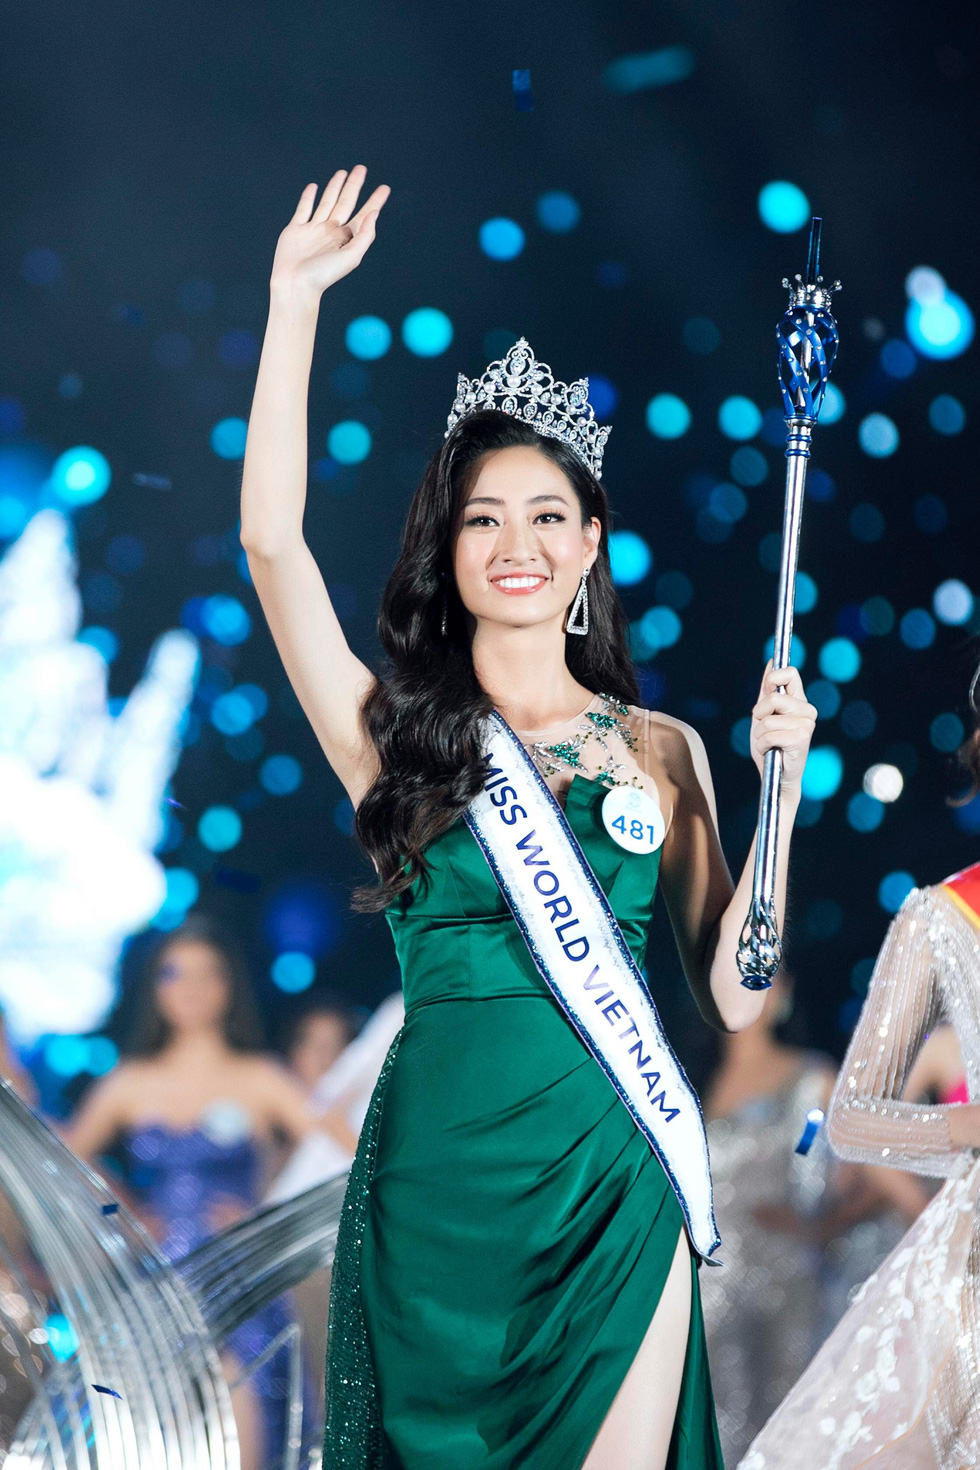 Hanoi university student crowned first Miss World Vietnam